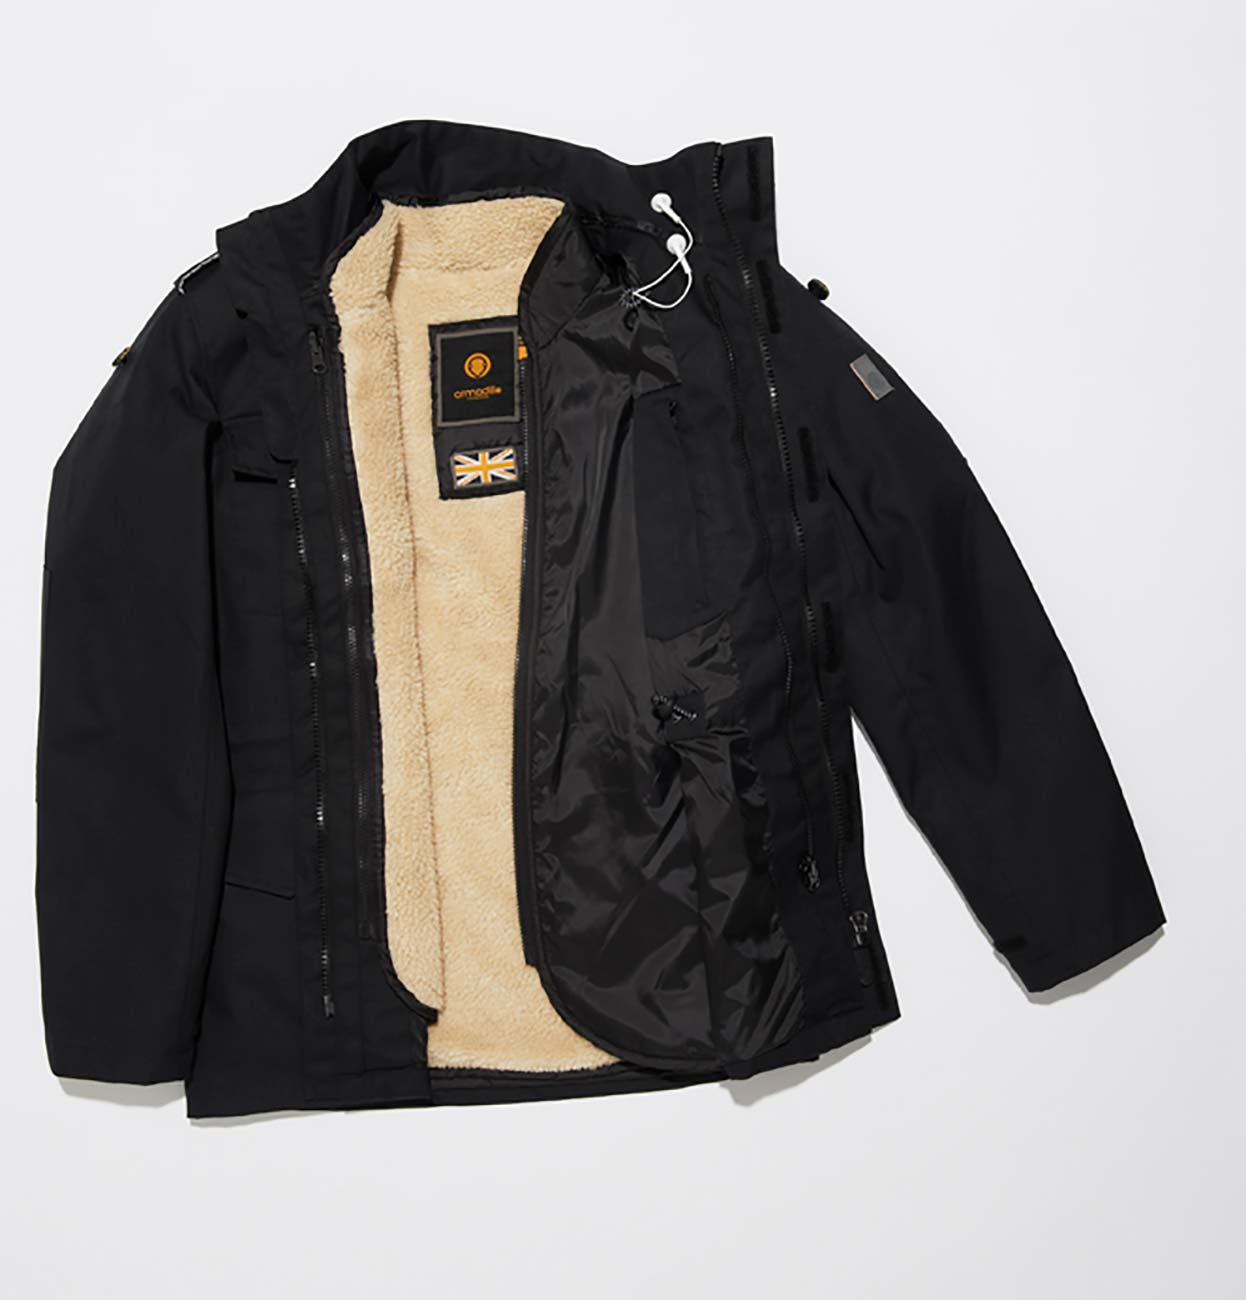 Travis B Men's Jacket - Black